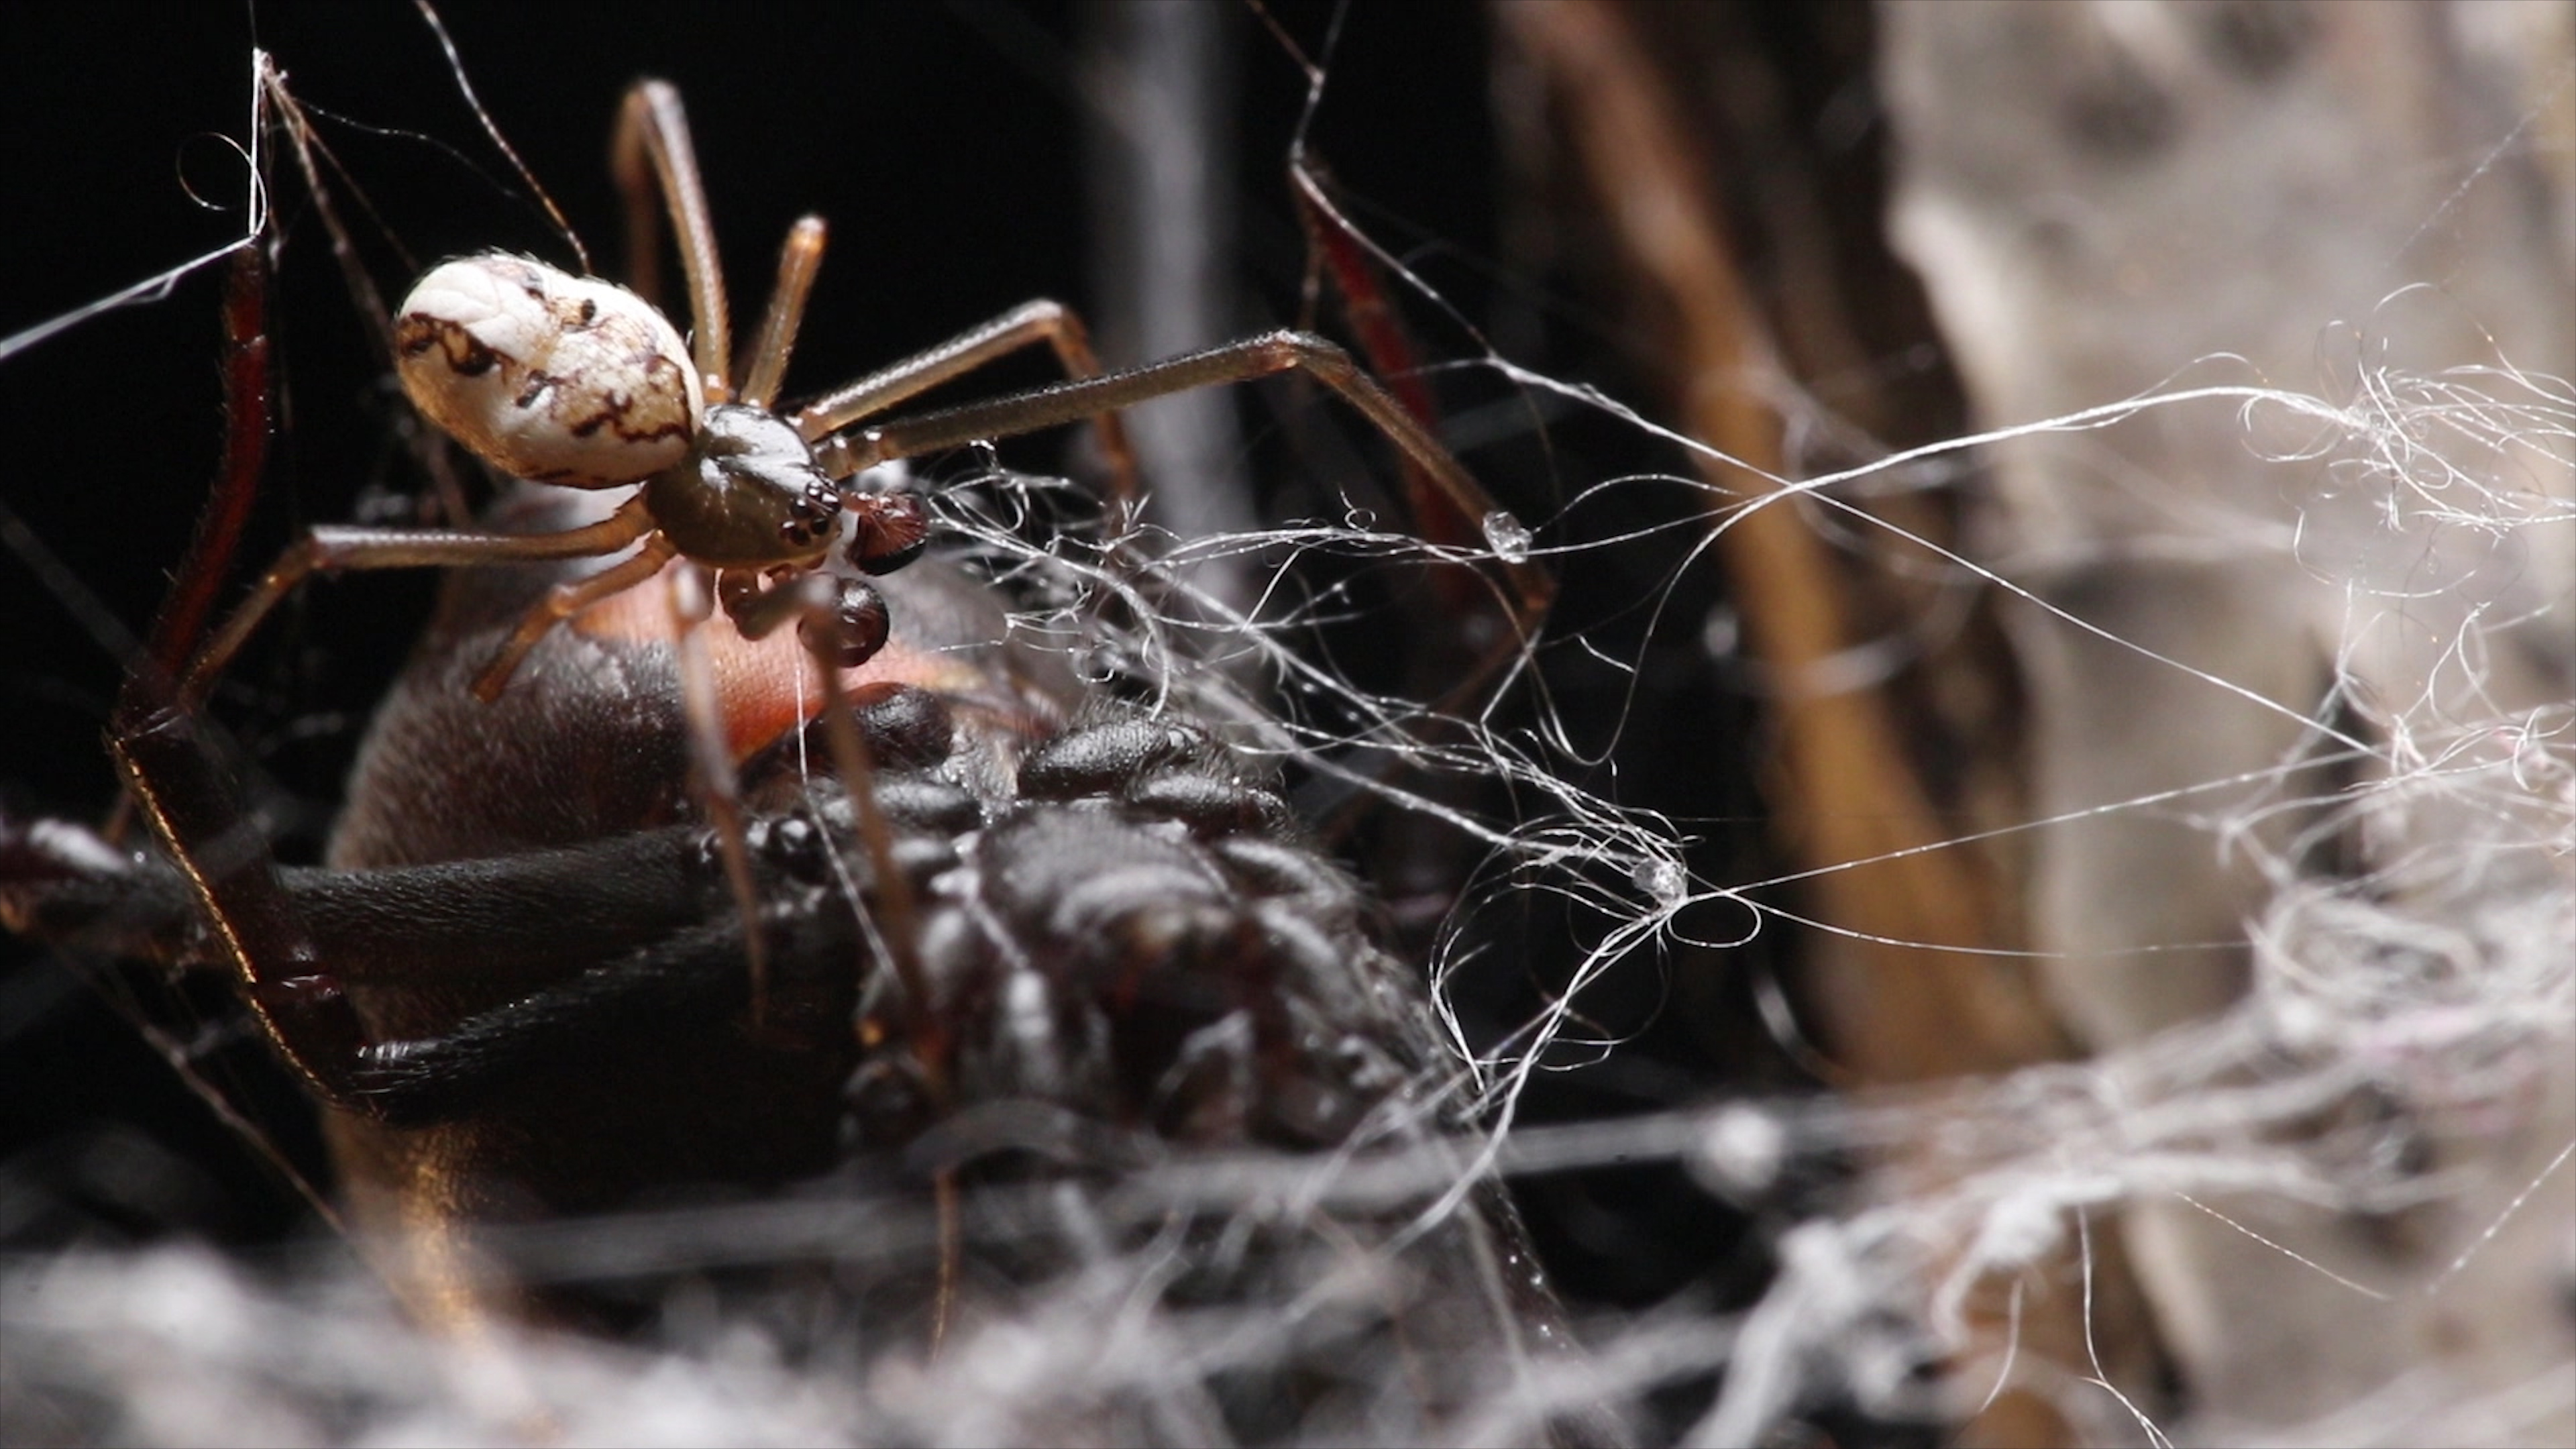 Why the Male Black Widow Spider Is a Real Home Wrecker | KQED